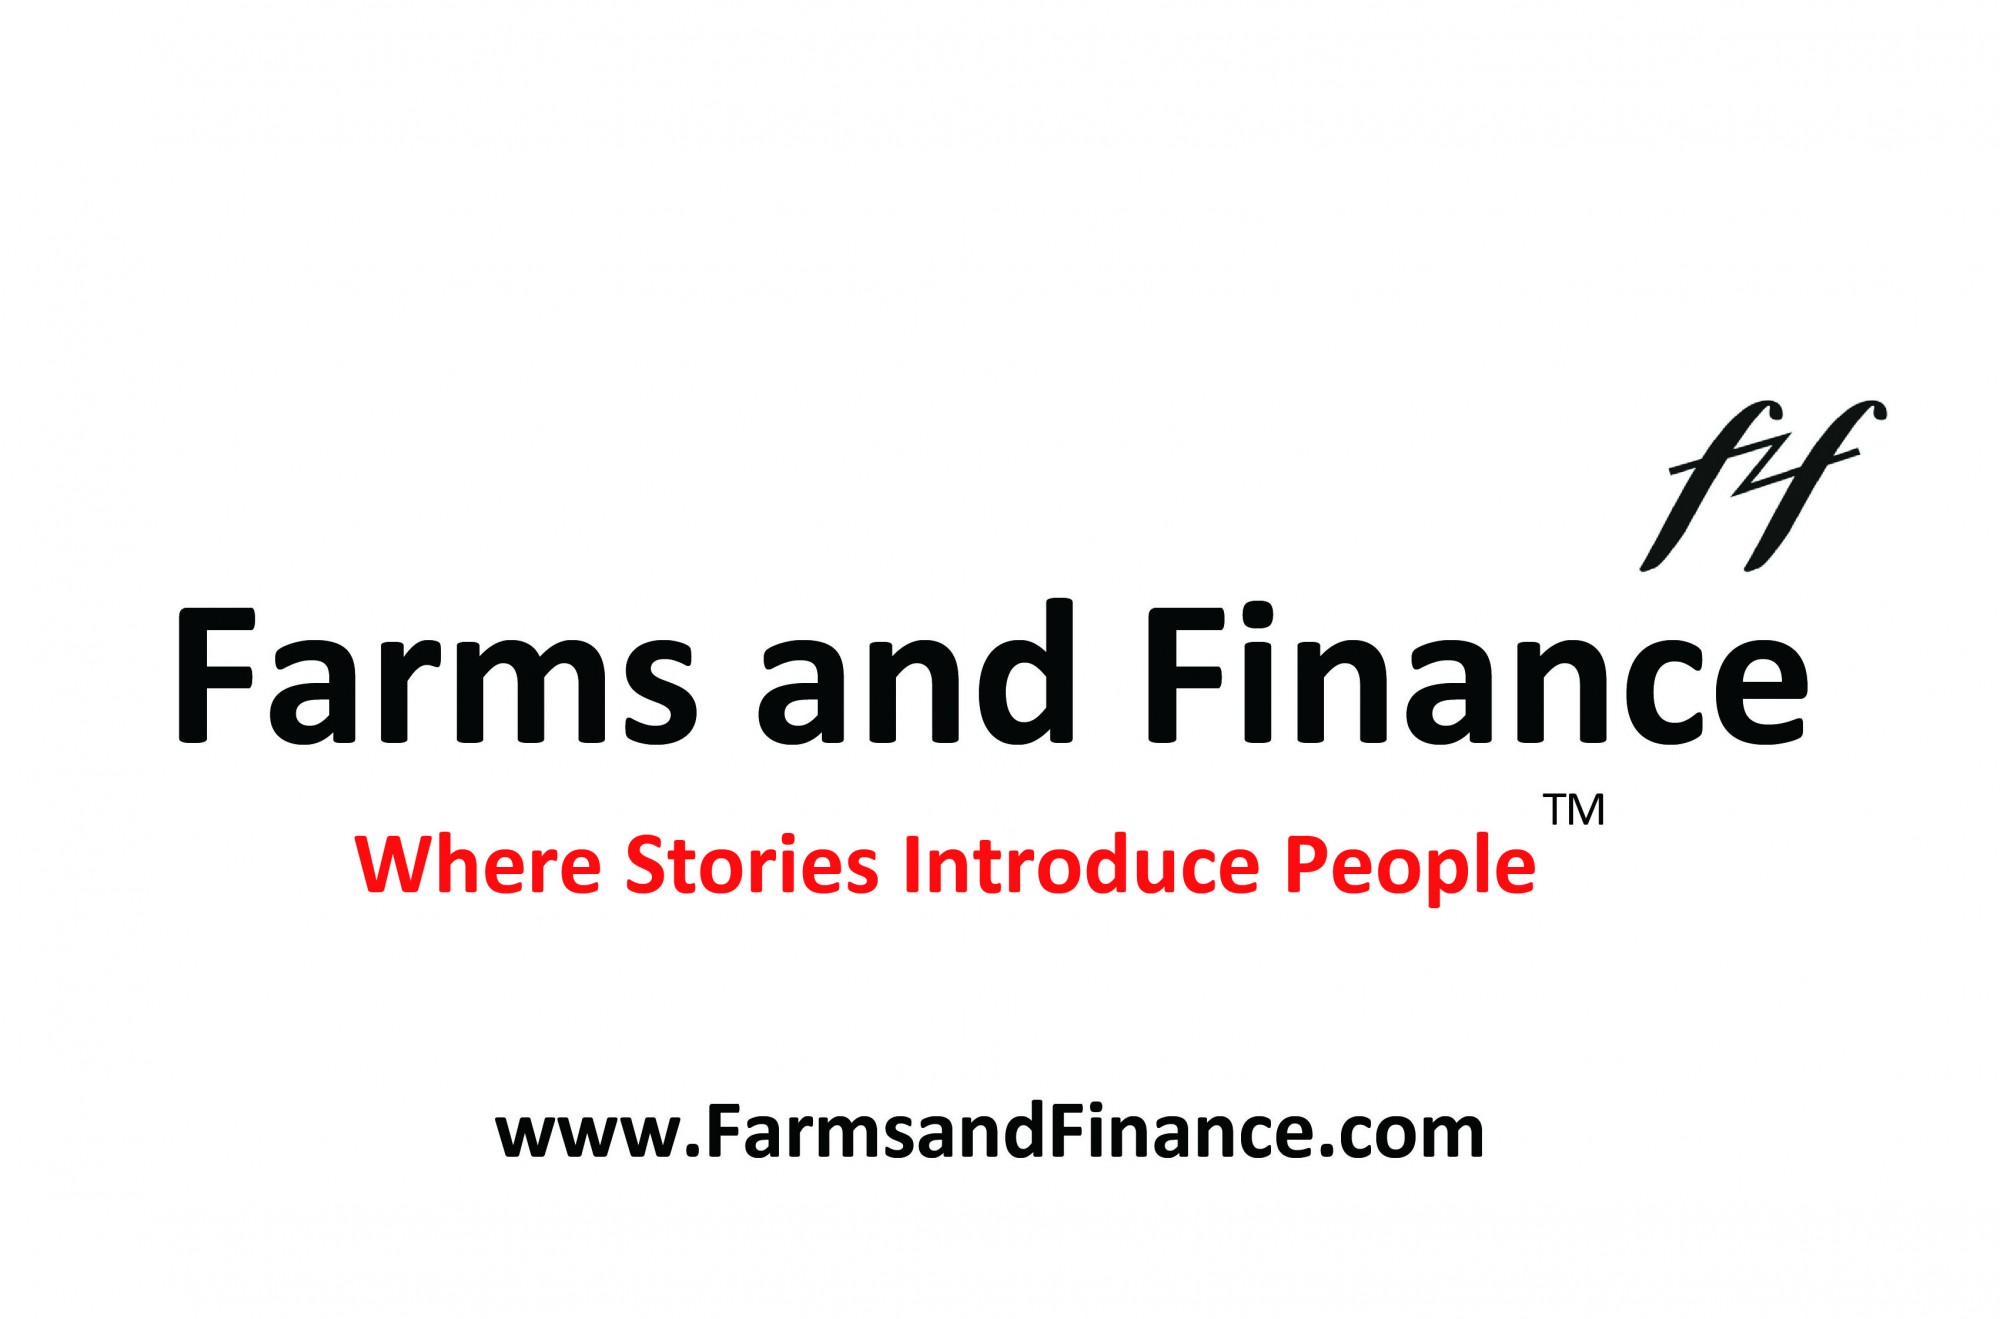 Farms and Finance